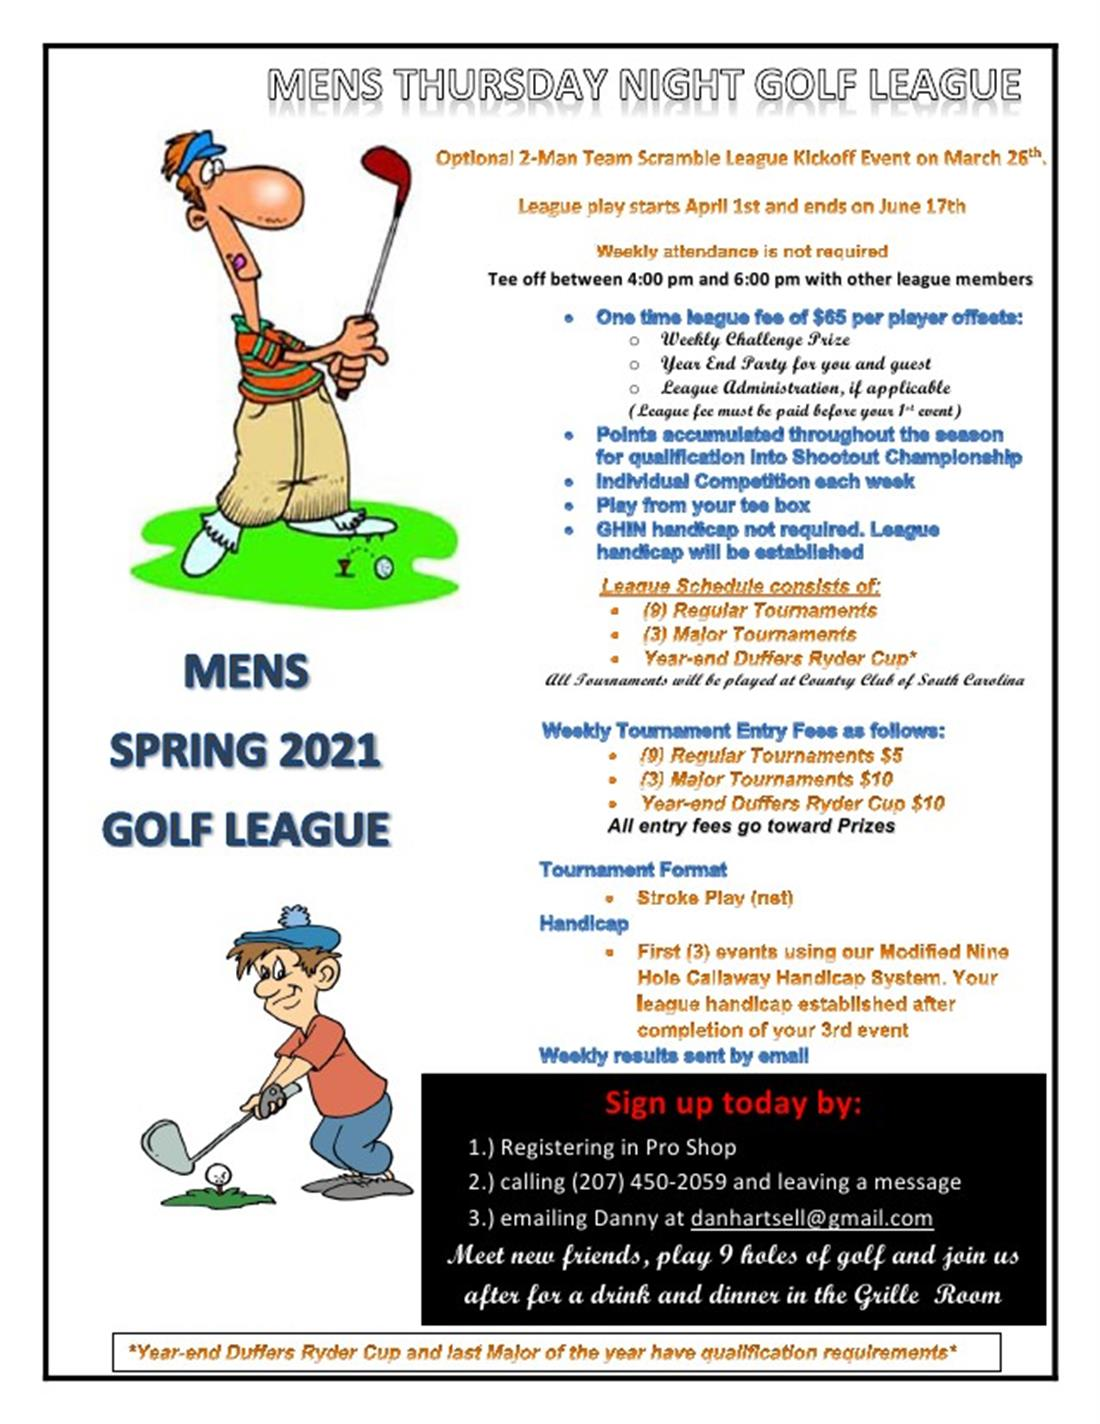 2021_MENS_GOLF_LEAGUE_FLYER00001